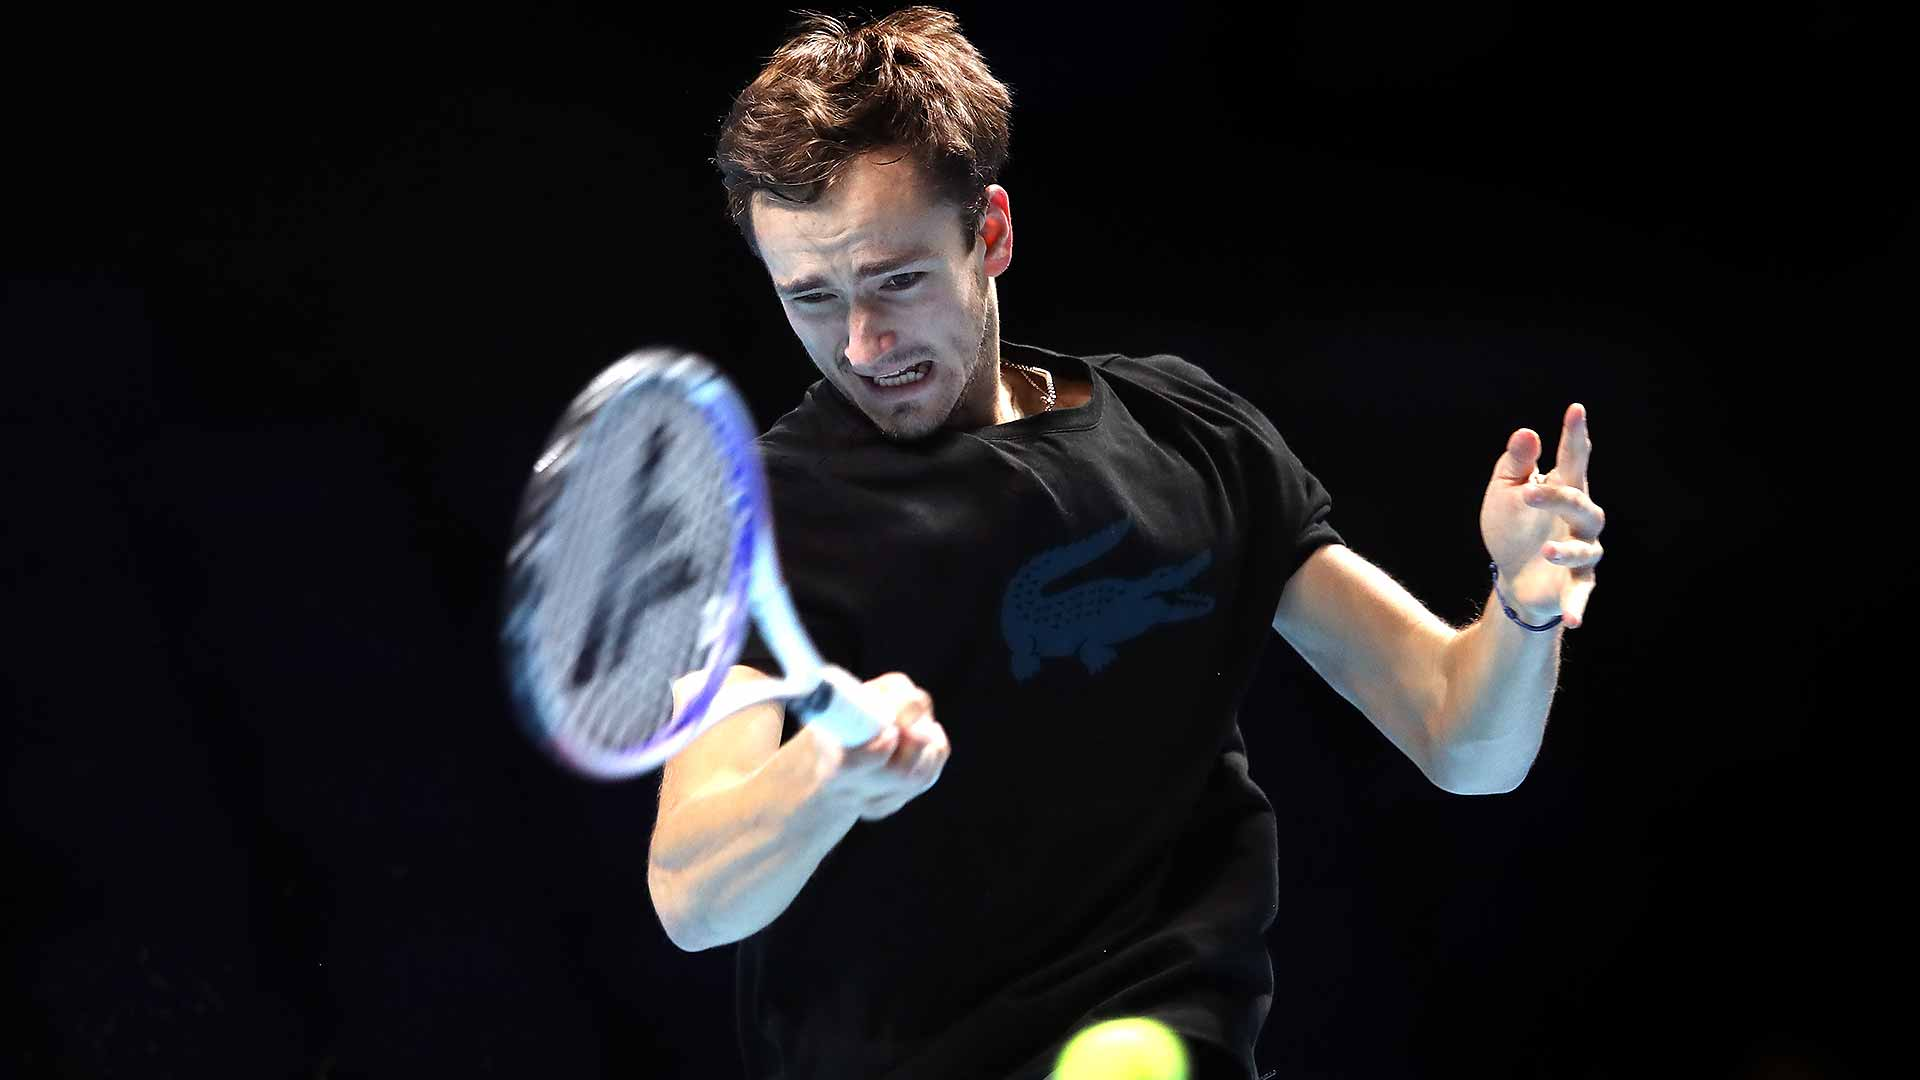 Daniil Medvedev is making his debut at the Nitto ATP Finals.